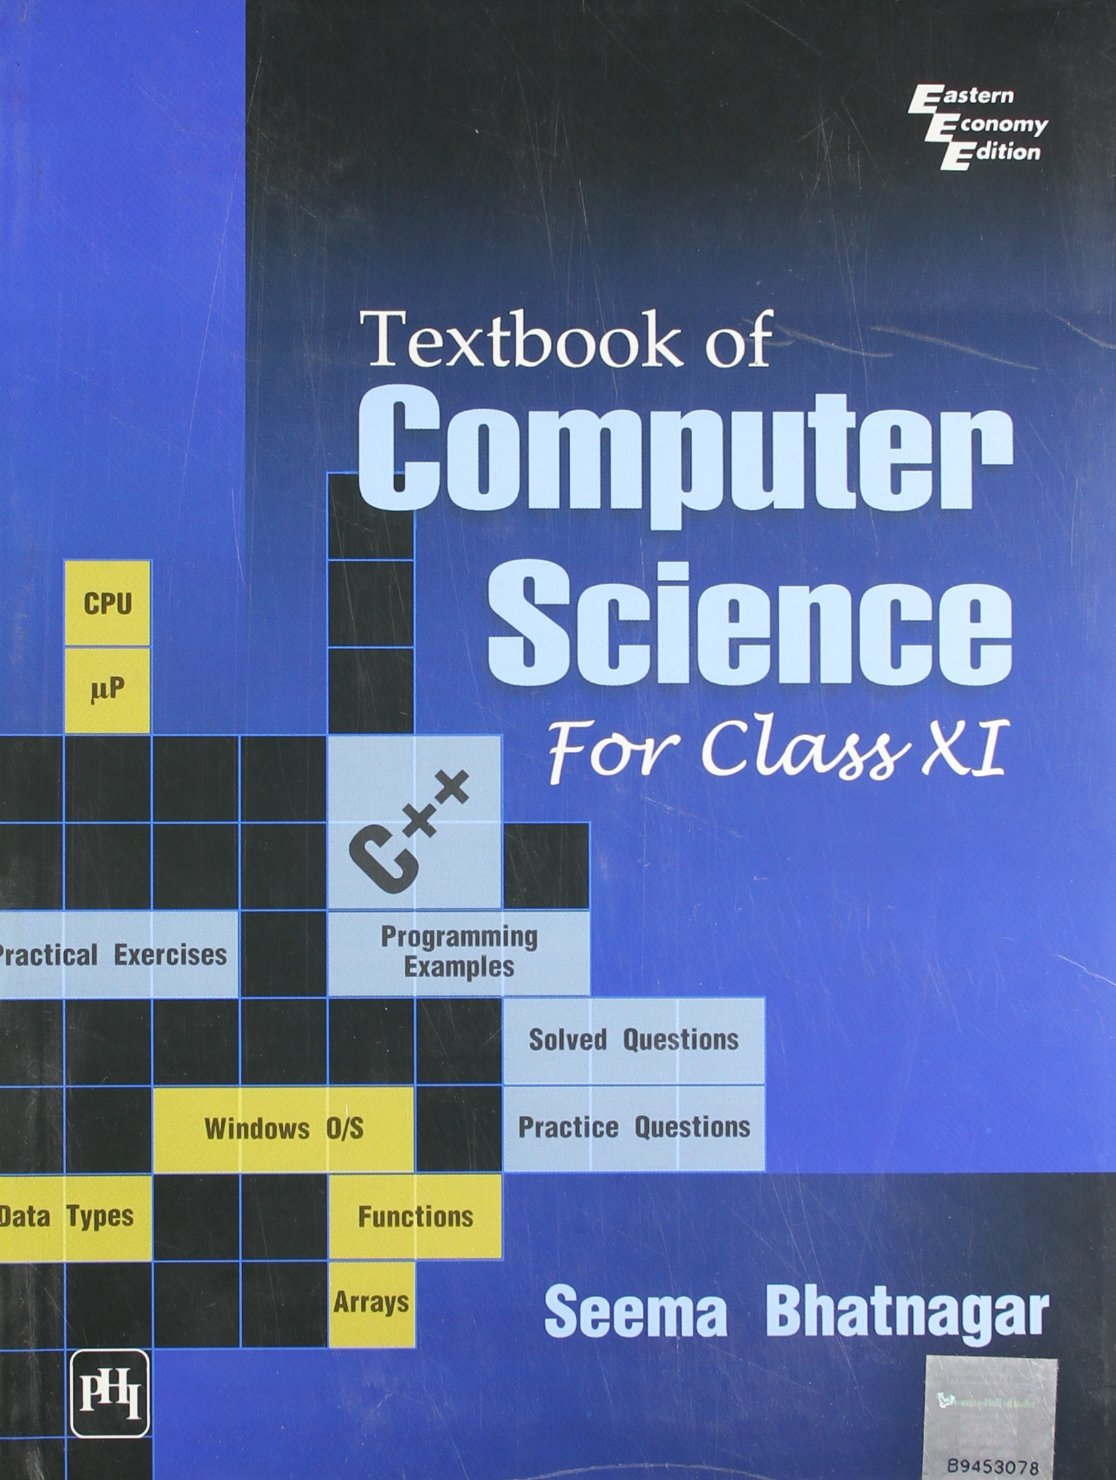 Buy Textbook Of Computer Science For Class Xi Book Online At Low Prices In India Textbook Of Computer Science For Class Xi Reviews Ratings Amazon In